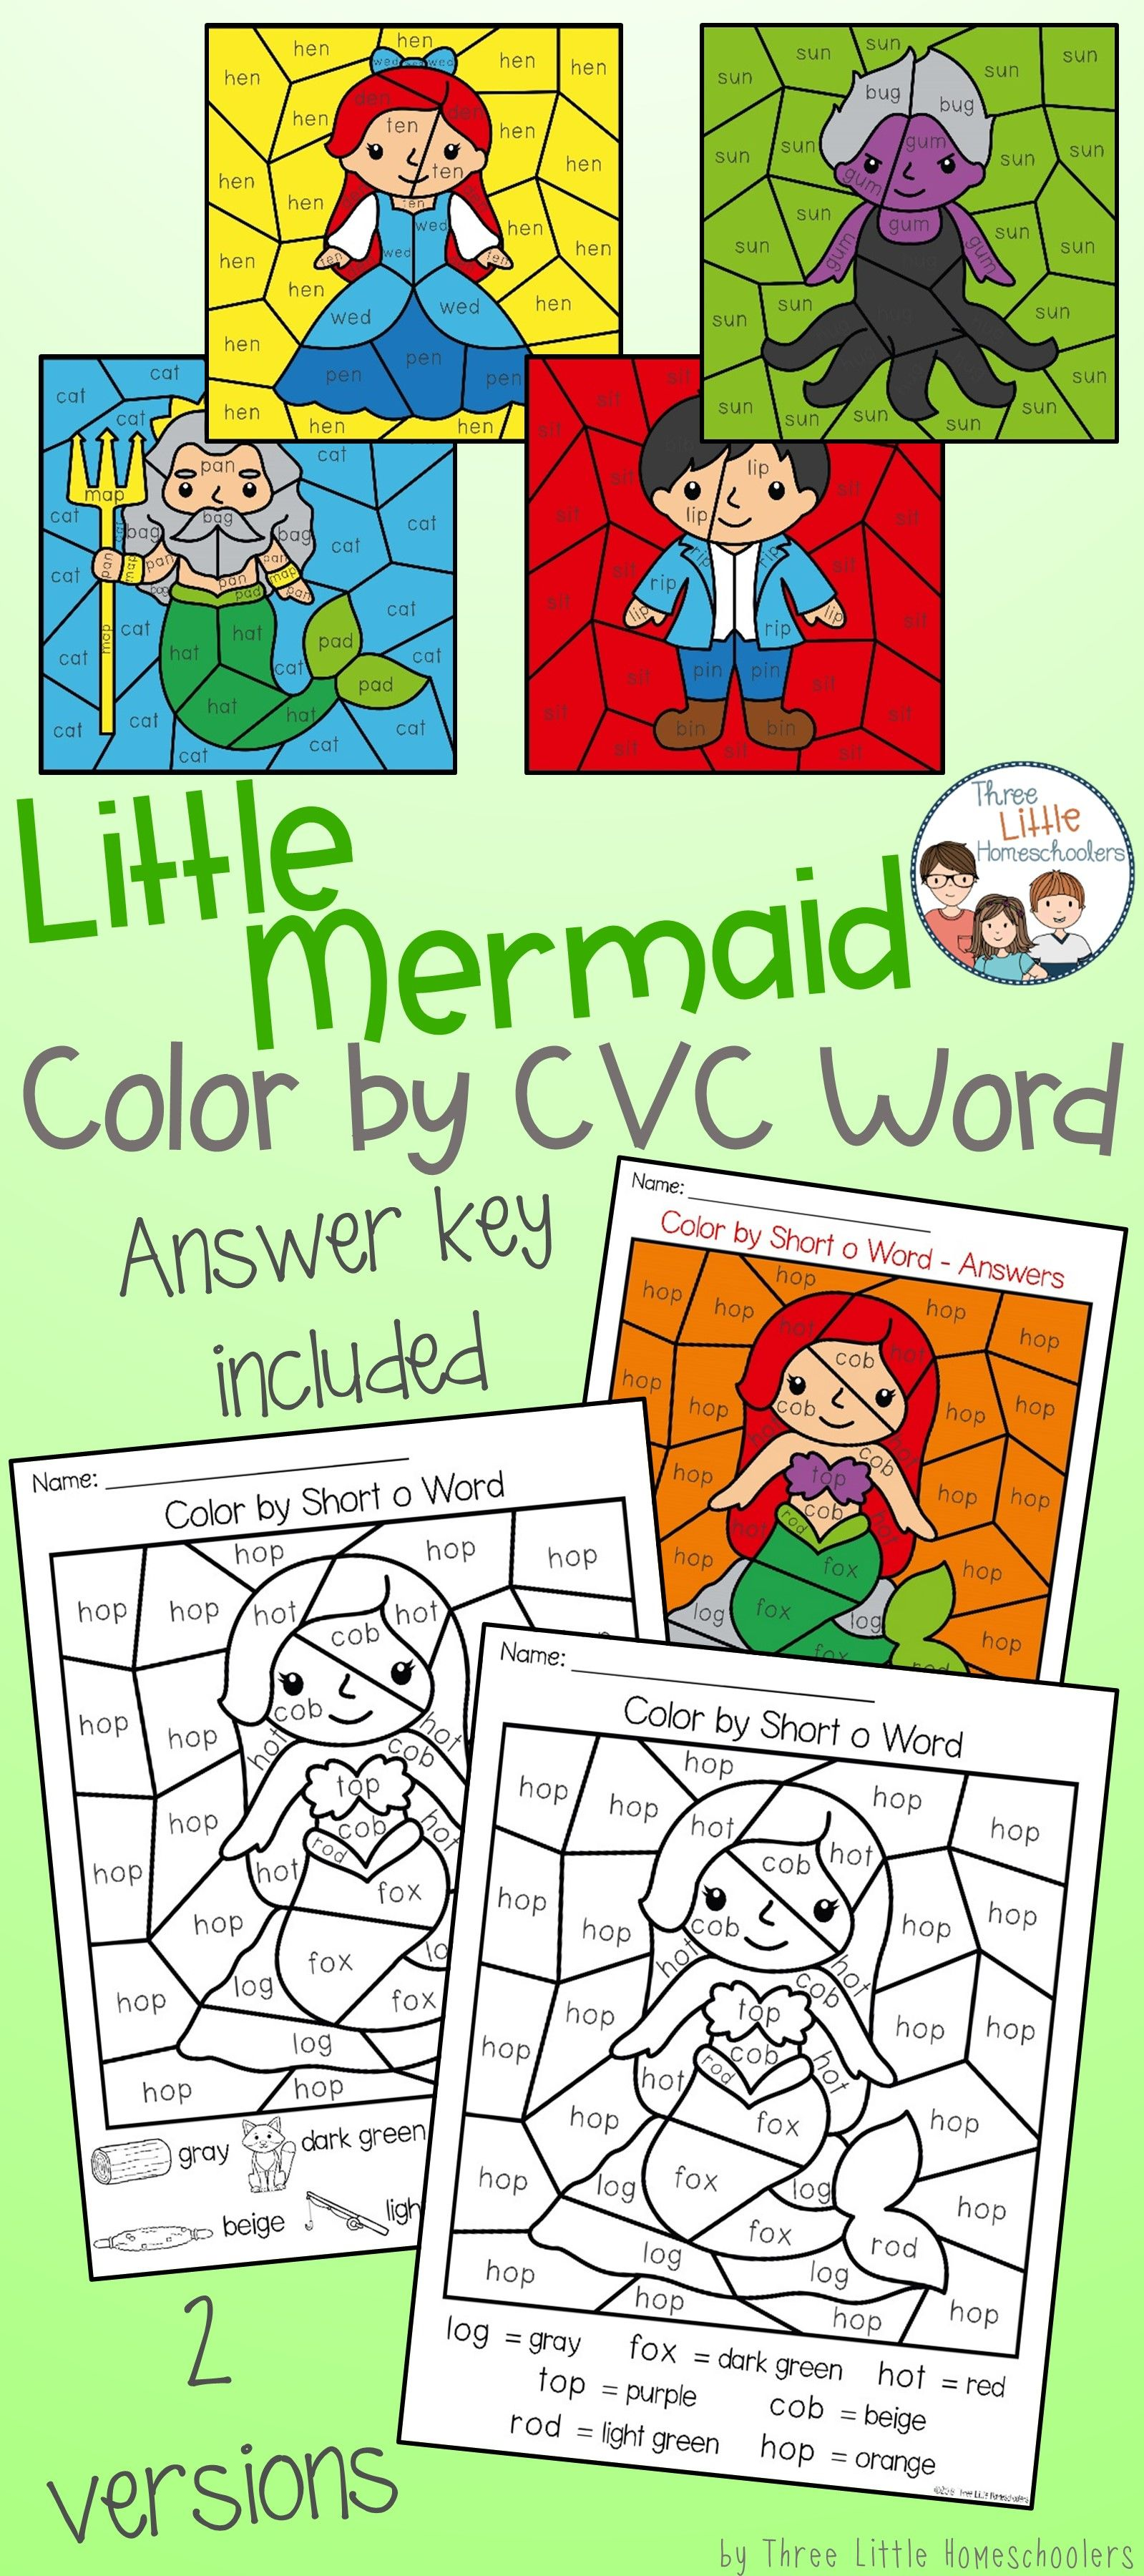 Little Mermaid Color By Cvc Word